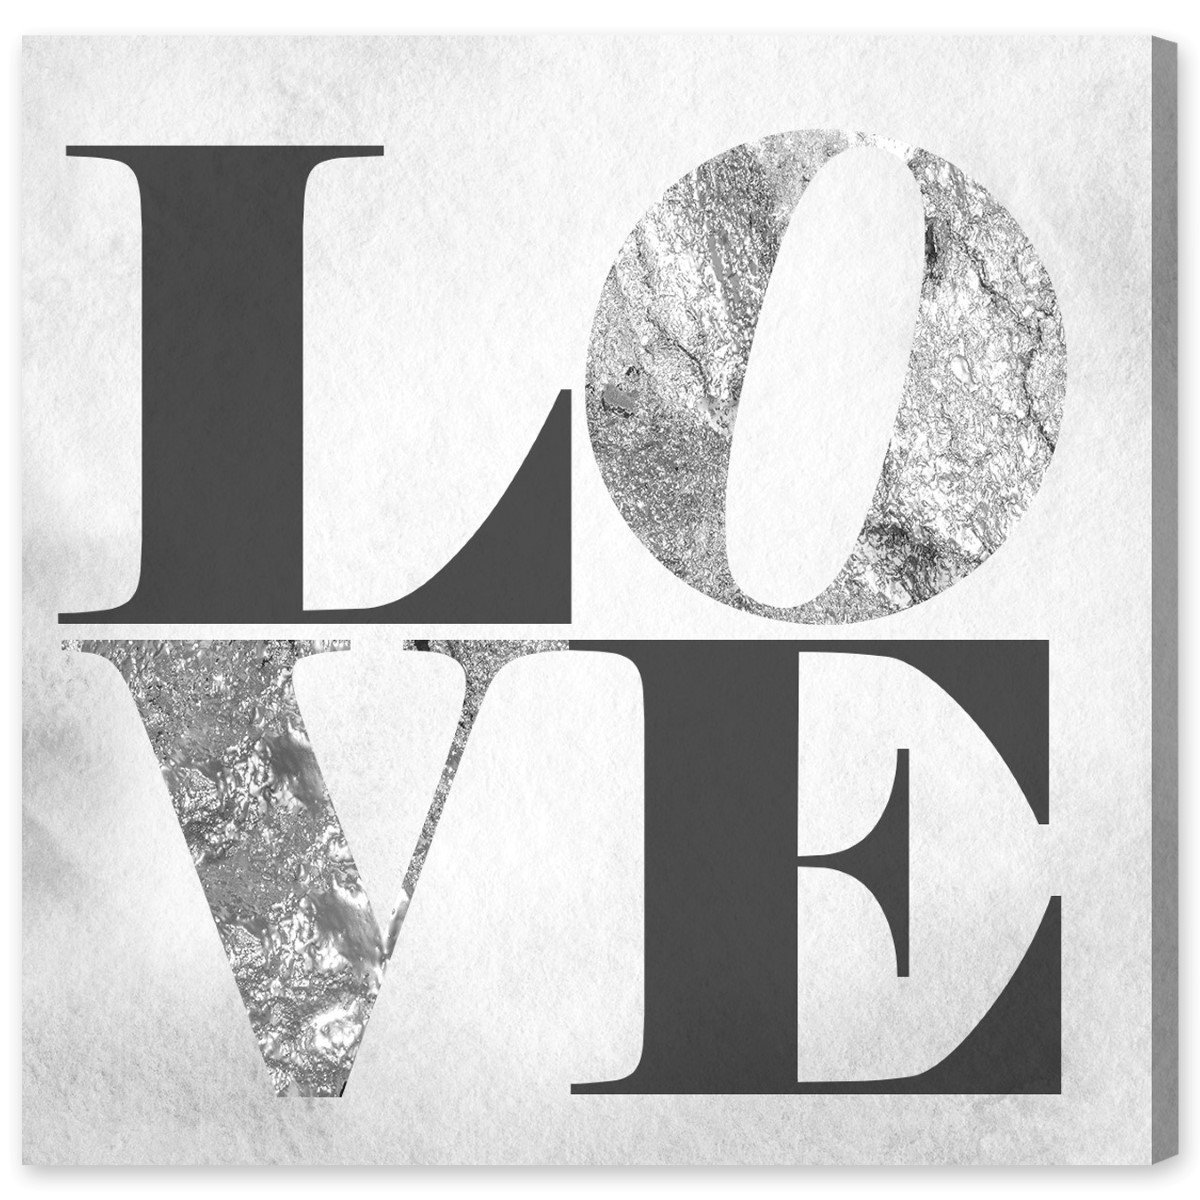 Amazon.com: Build On Love Silver by Oliver Gal | Contemporary Premium Canvas Art Print. The Typography Wall Art Decor Collection. 16x16 inch, Gray: Wall Art